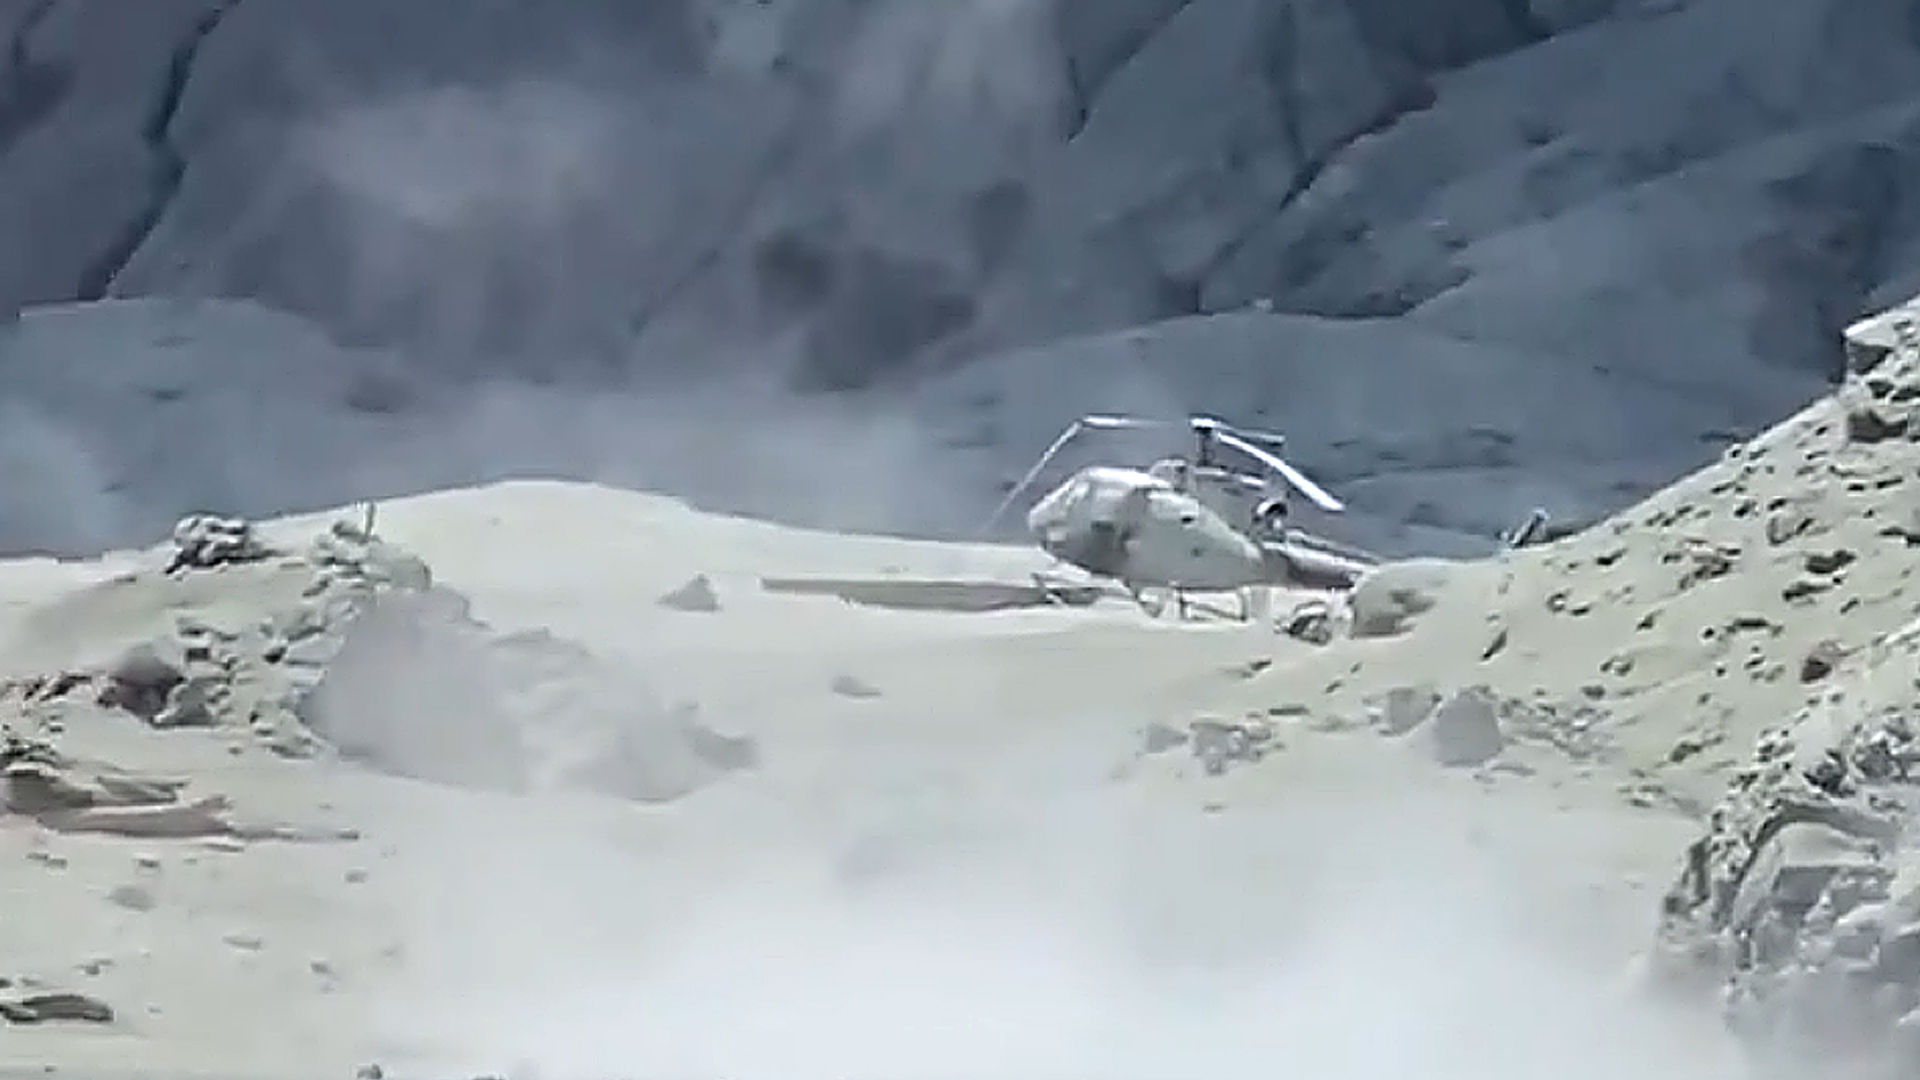 An image of a damaged helicopter on White Island after the eruption. (Credit: Twitter/Michael Schade via CNN)